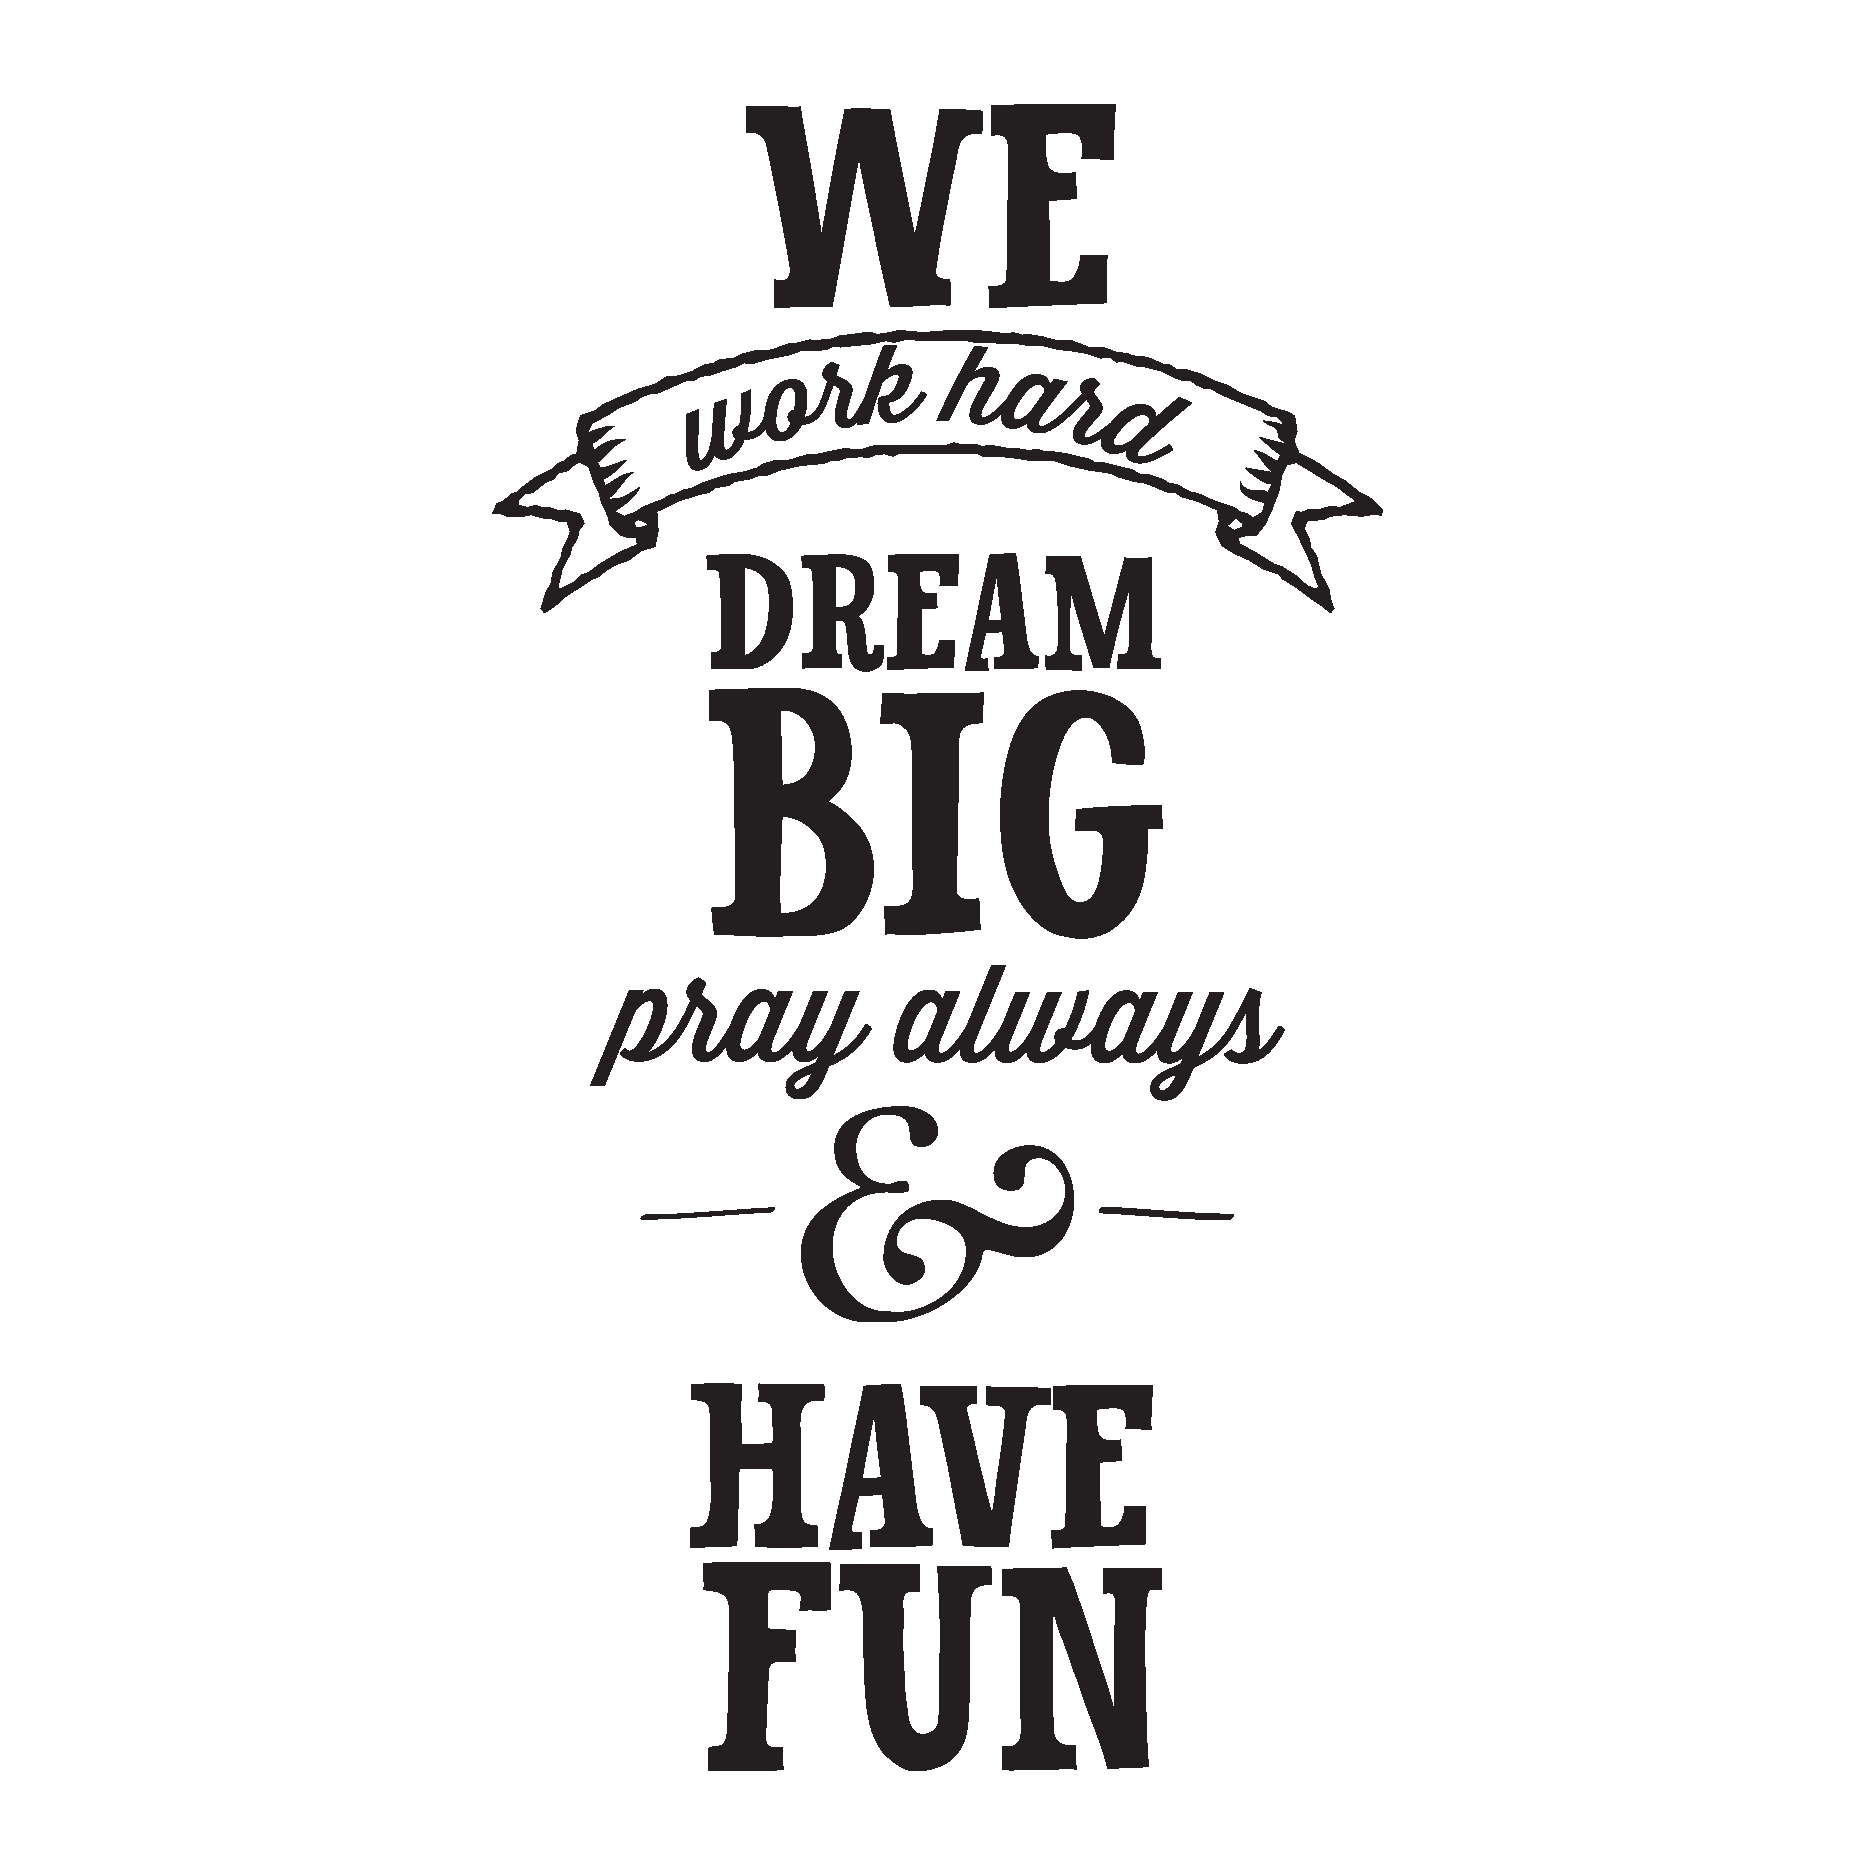 We Work Hard Dream Big Wall Qutoes Decal together with Deadpool Chibi Decal Sticker furthermore Home Sweet Home Leaves Wall Quotes Decal together with Roots Tree Life Wall Quotes Decal likewise Winners Focus Winning Wall Quotes Decal. on lime green color